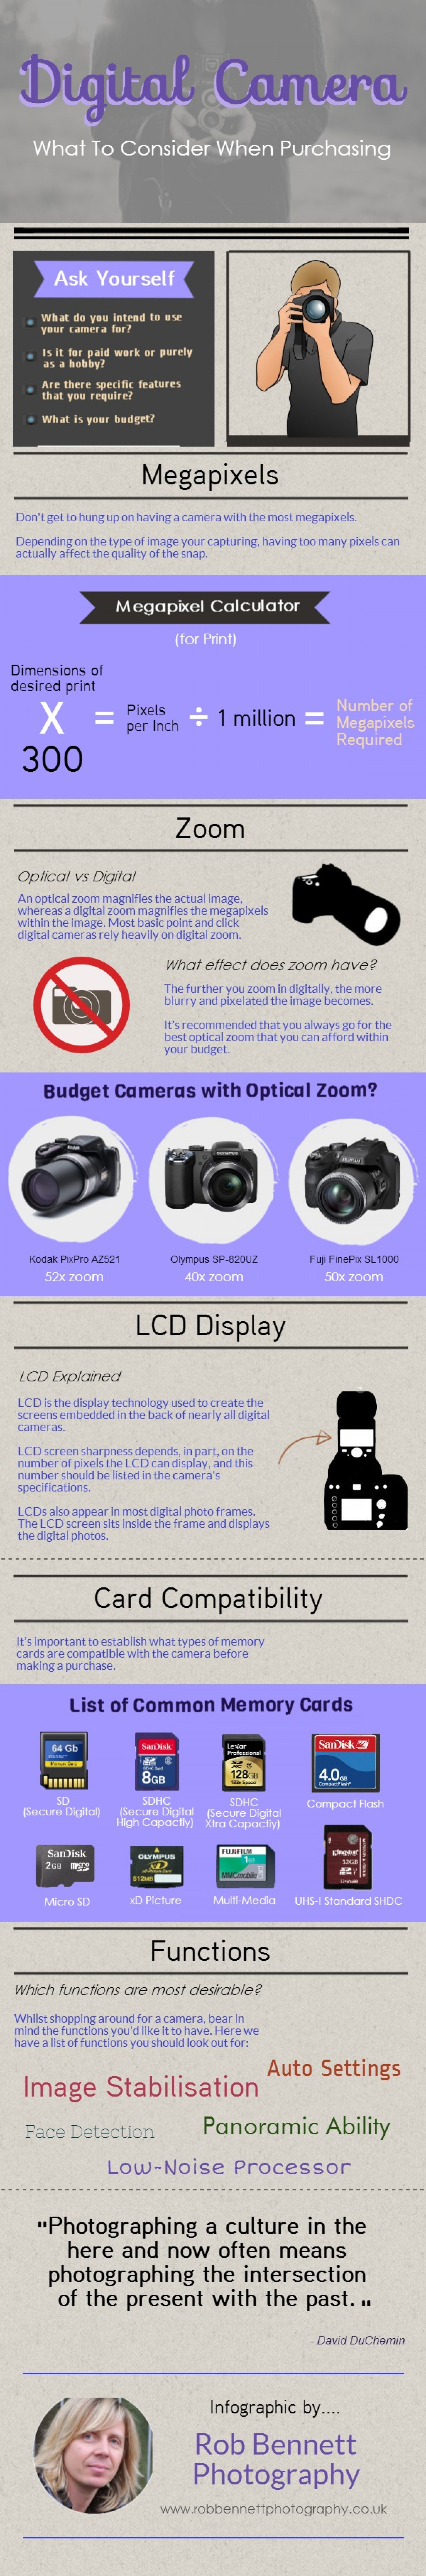 Digital Camera Buying Tips Infographic